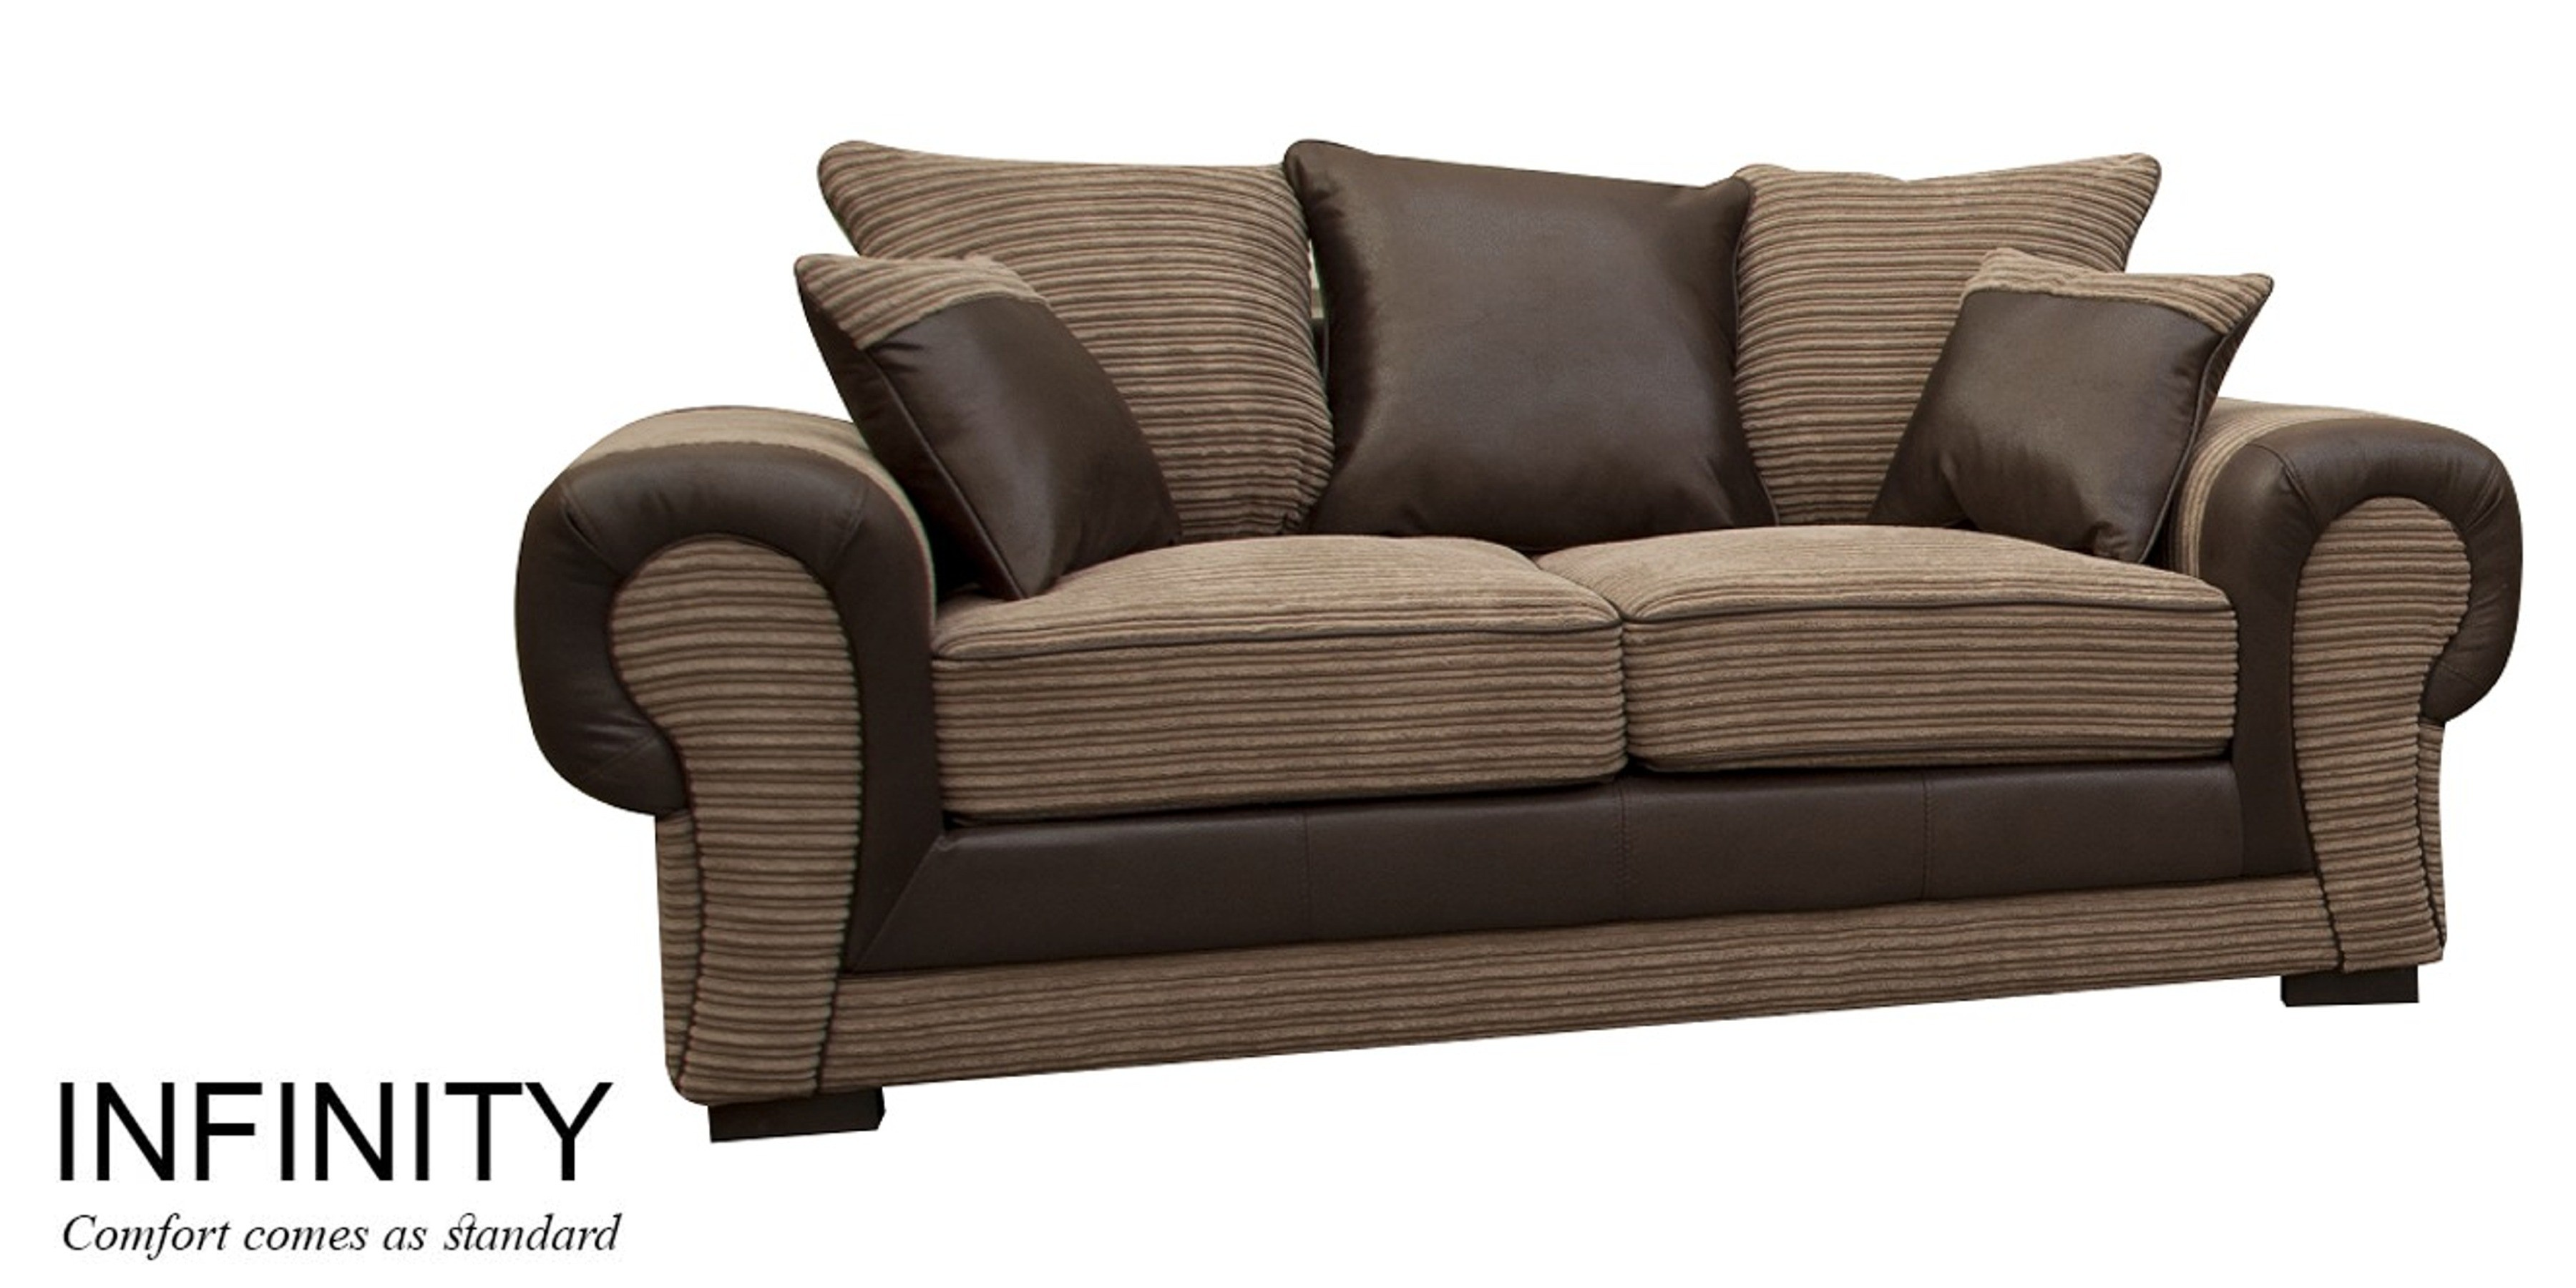 Infinity 2 Seater Scatter Back Coffee Fabric Sofa